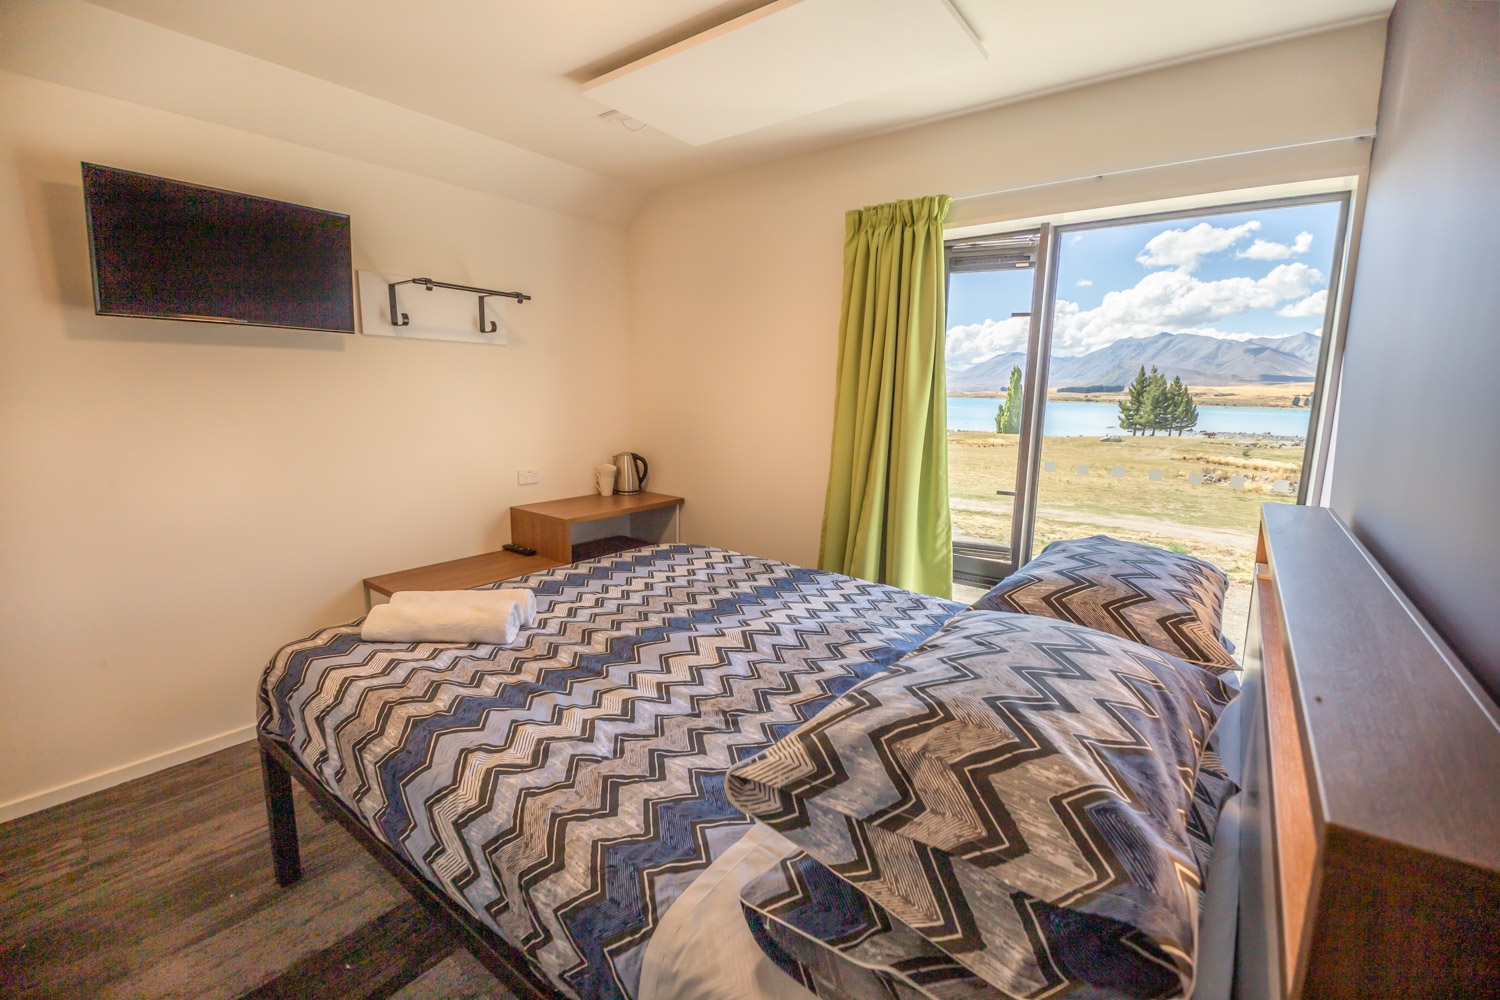 yha-lake-tekapo-interior-double-ensuite-room-201903-dgpoi-070-lr-1500